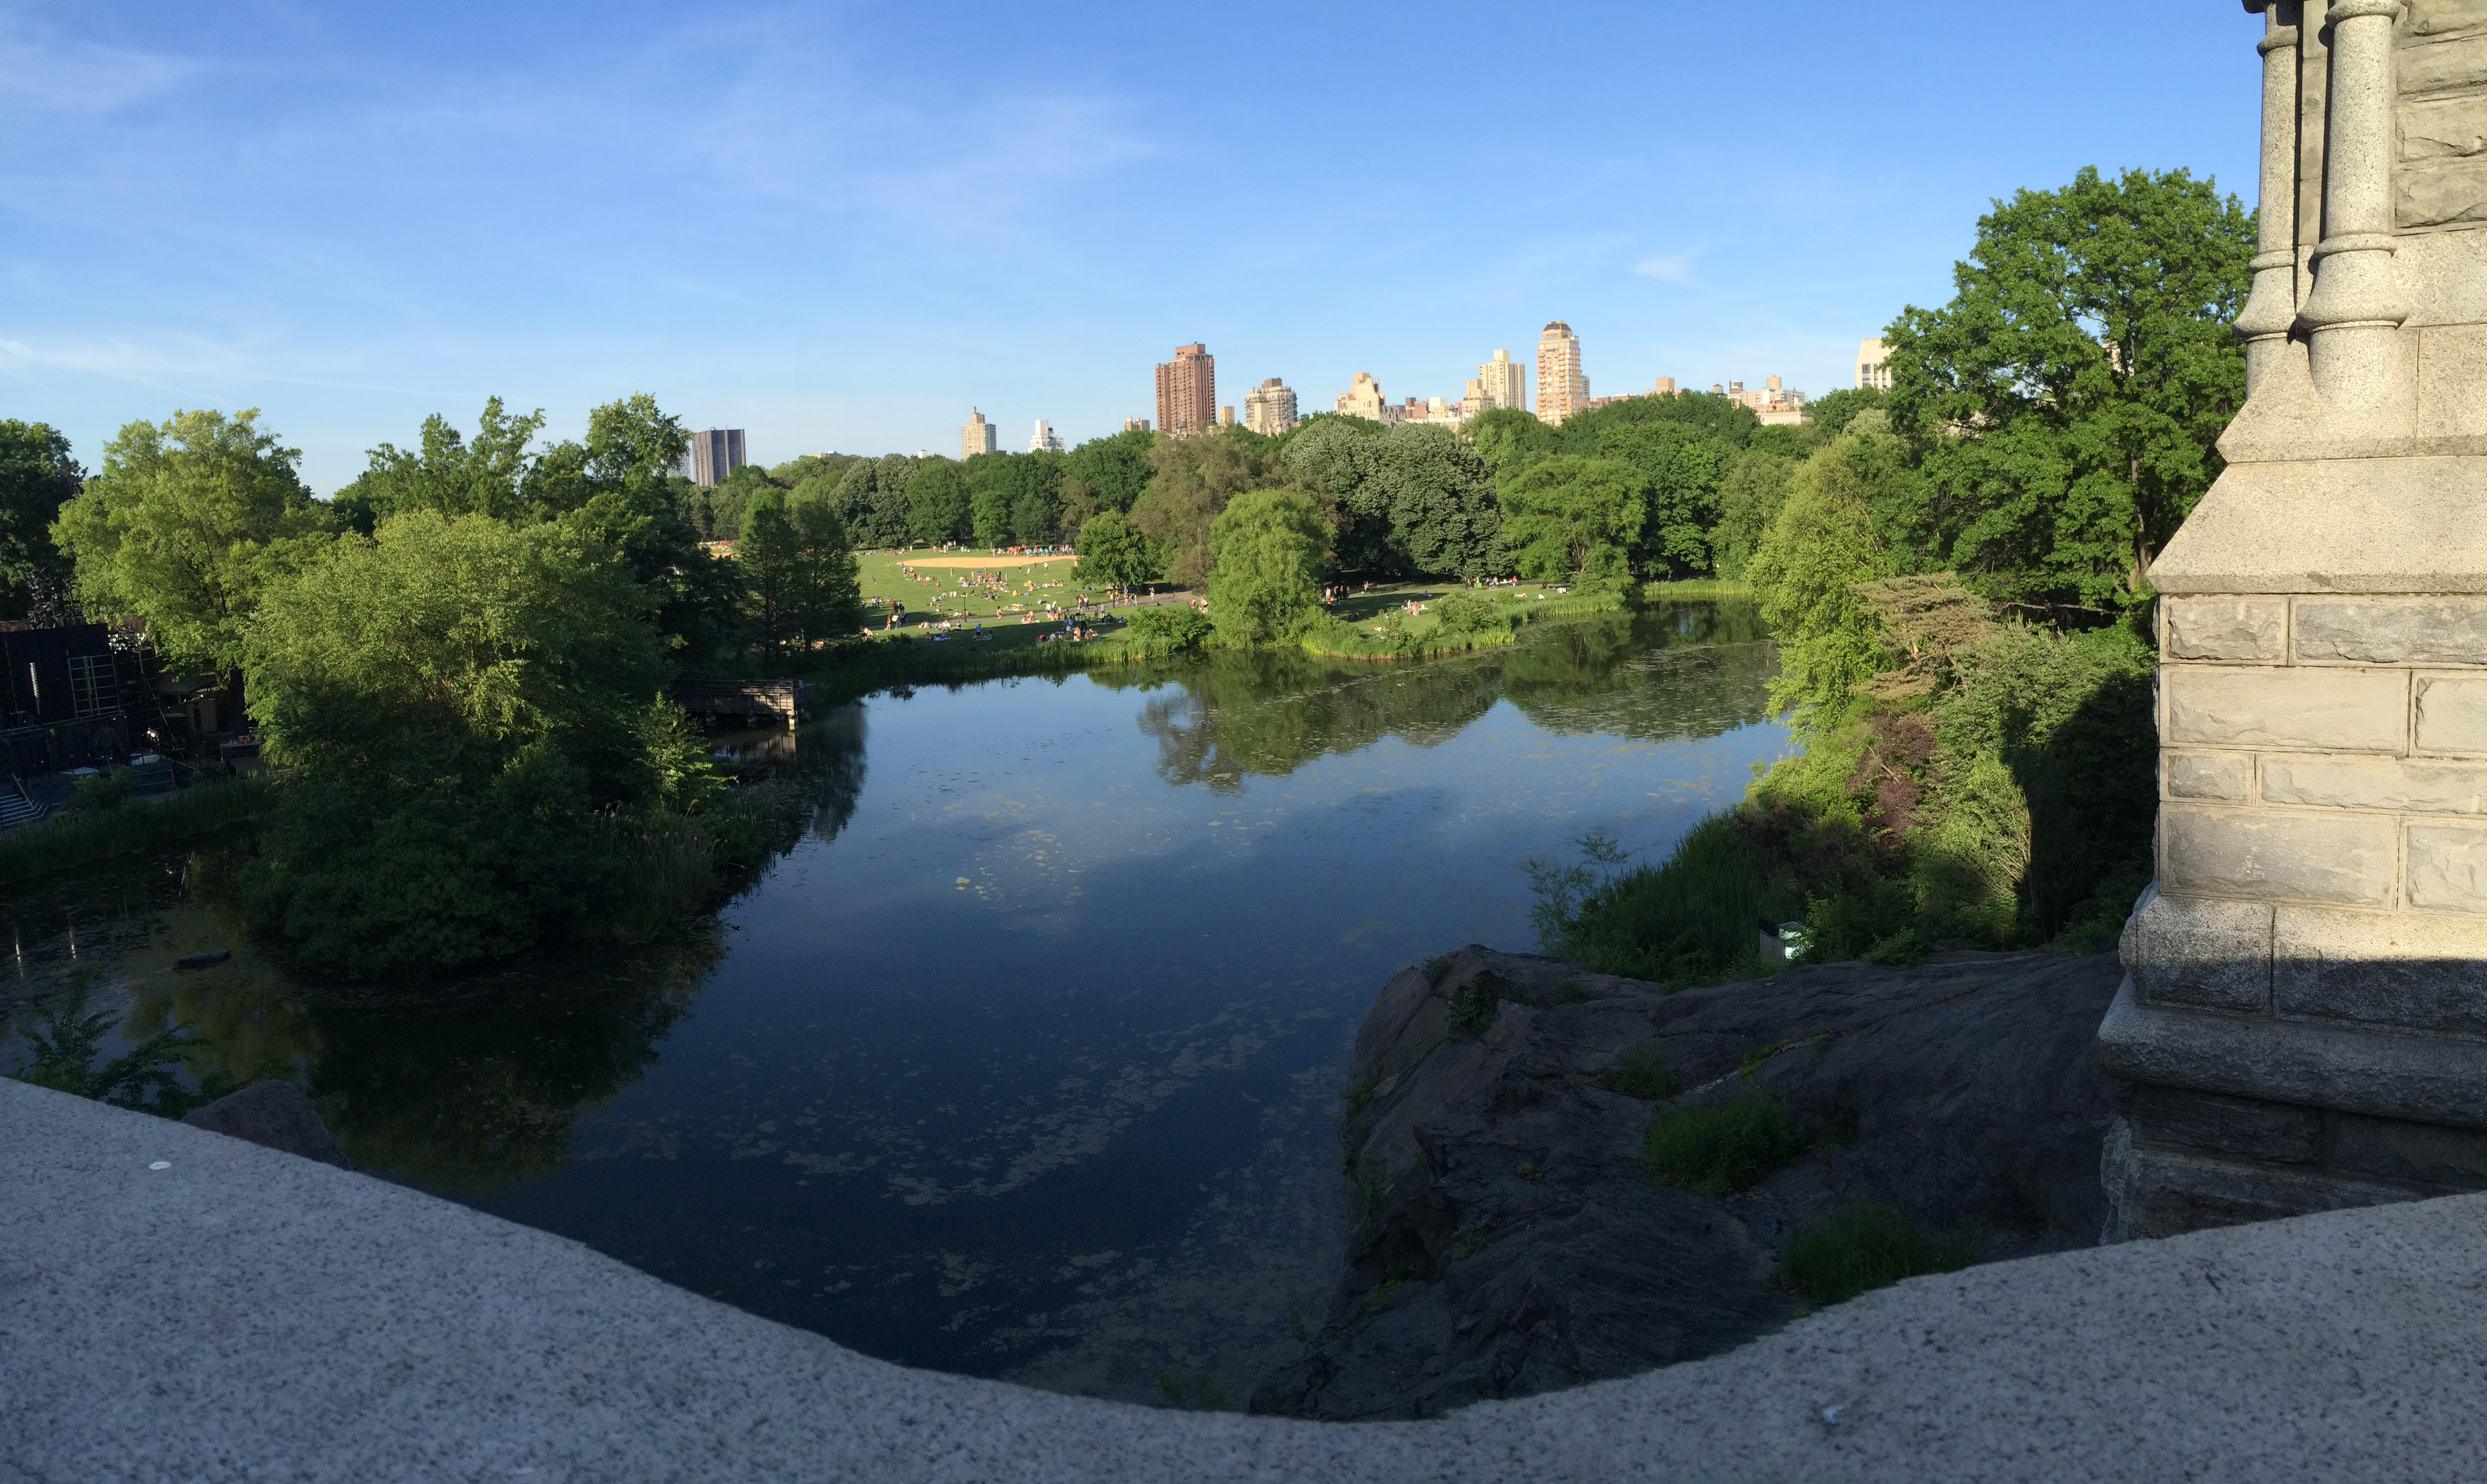 Central Park on Sunday June 1, 2014 610